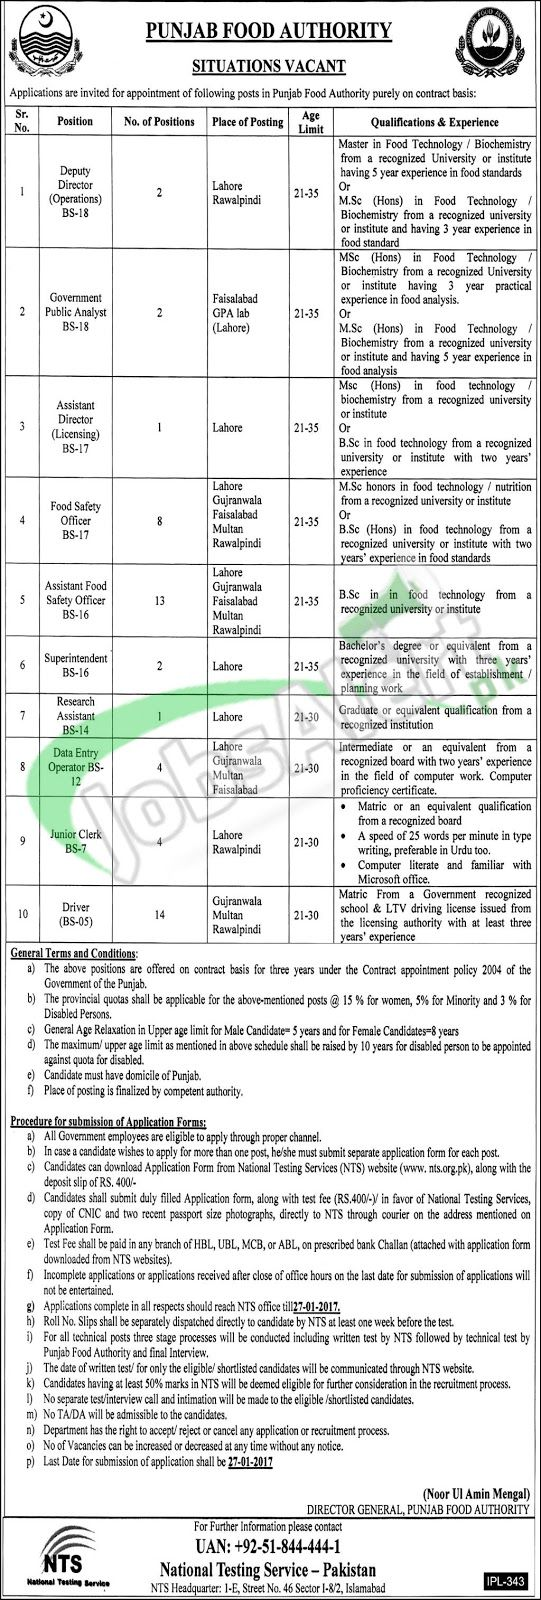 Food Safety Officer Jobs 2017 in Punjab Food Authority